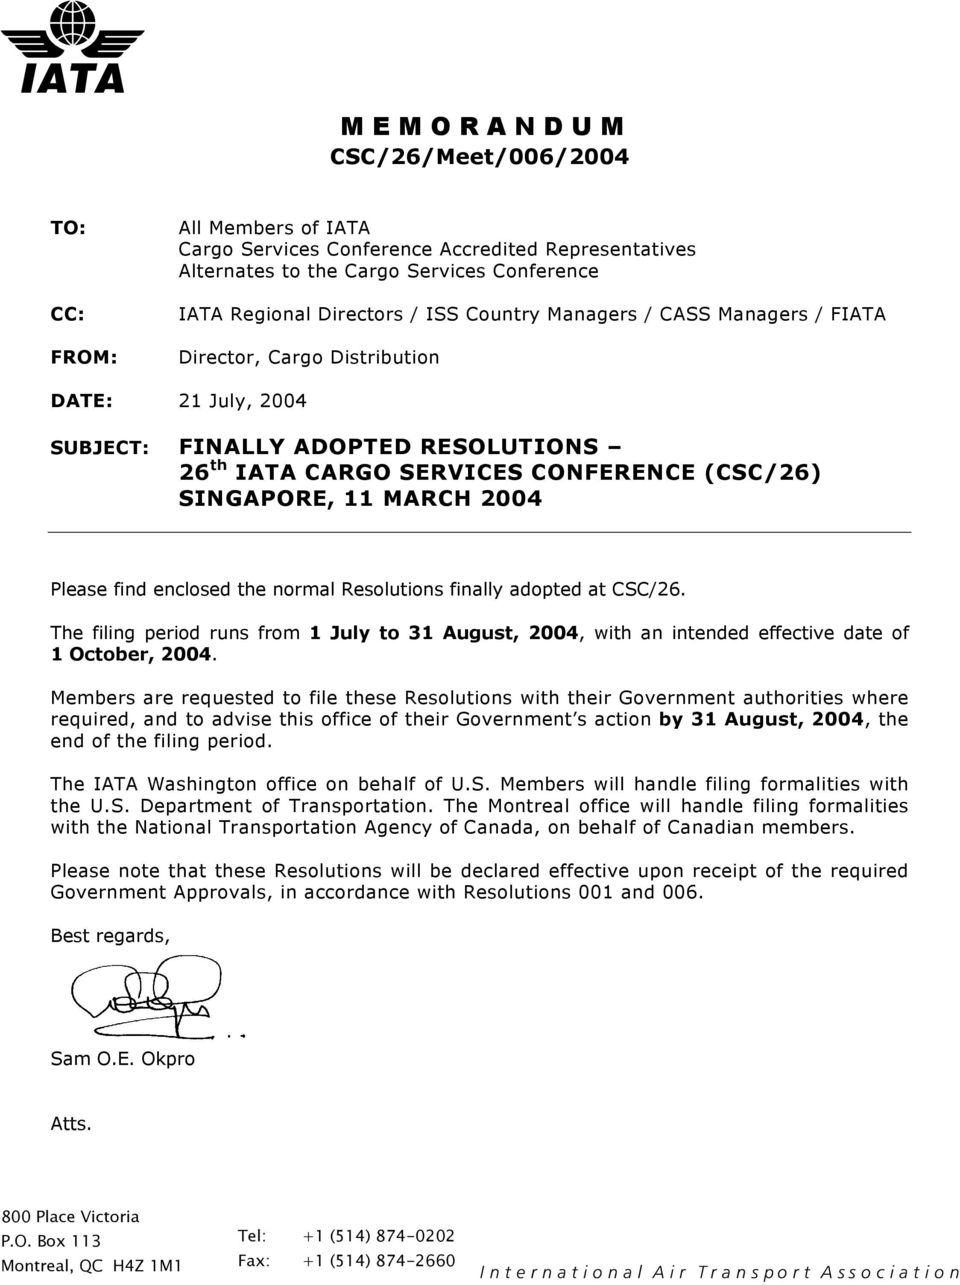 2004 Please find enclosed the normal Resolutions finally adopted at CSC/26. The filing period runs from 1 July to 31 August, 2004, with an intended effective date of 1 October, 2004.